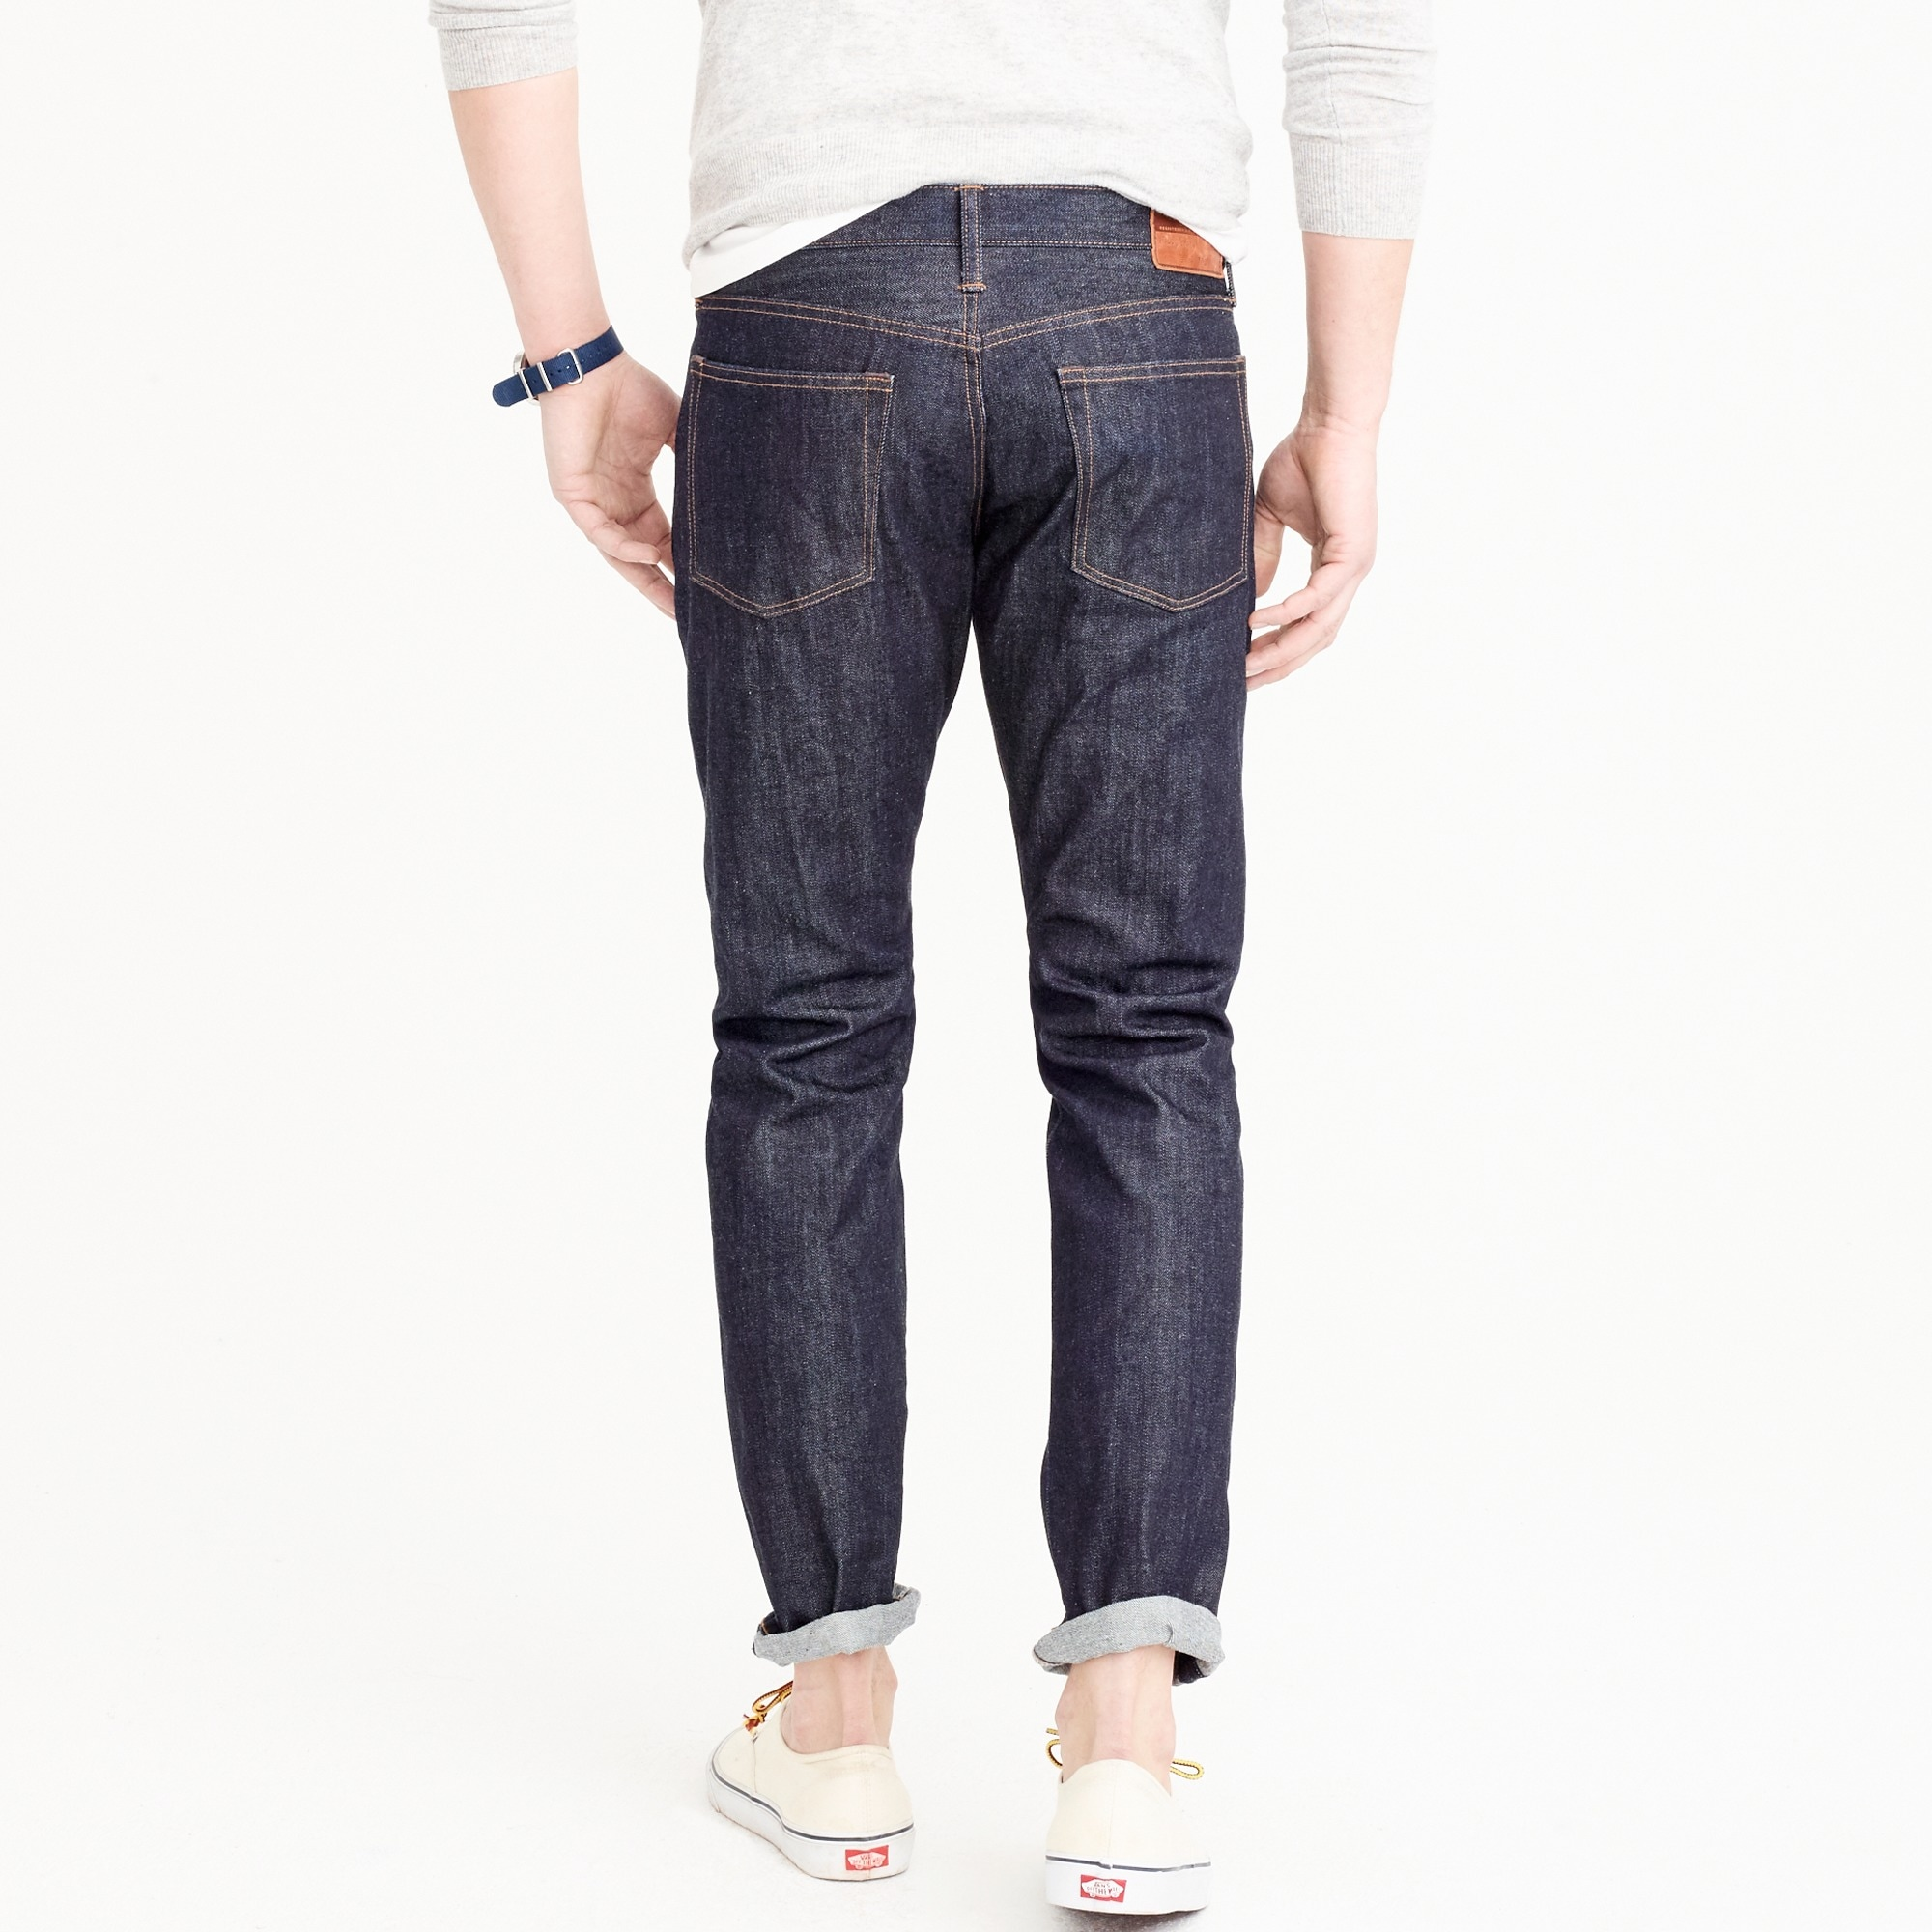 770 Straight-fit jean in Riverton wash